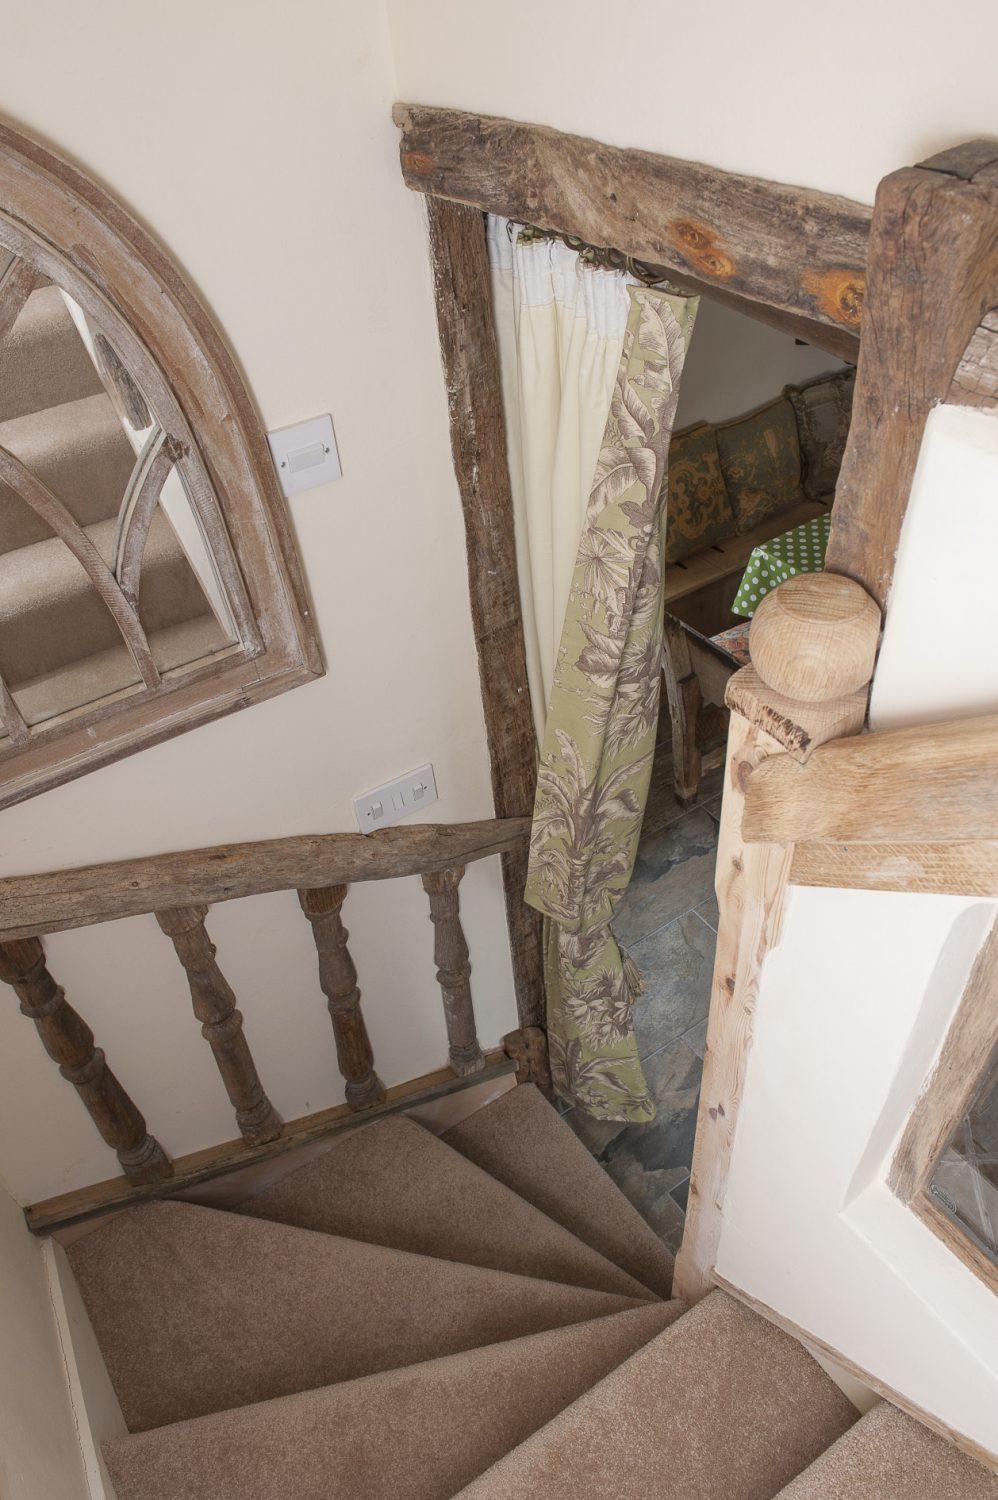 The stairway has been framed in ancient oak whilst oak spindles, left over from the grand reclaimed staircase in Caroline's own barn home, have been set into the wallsThe stairway has been framed in ancient oak whilst oak spindles, left over from the grand reclaimed staircase in Caroline's own barn home, have been set into the walls